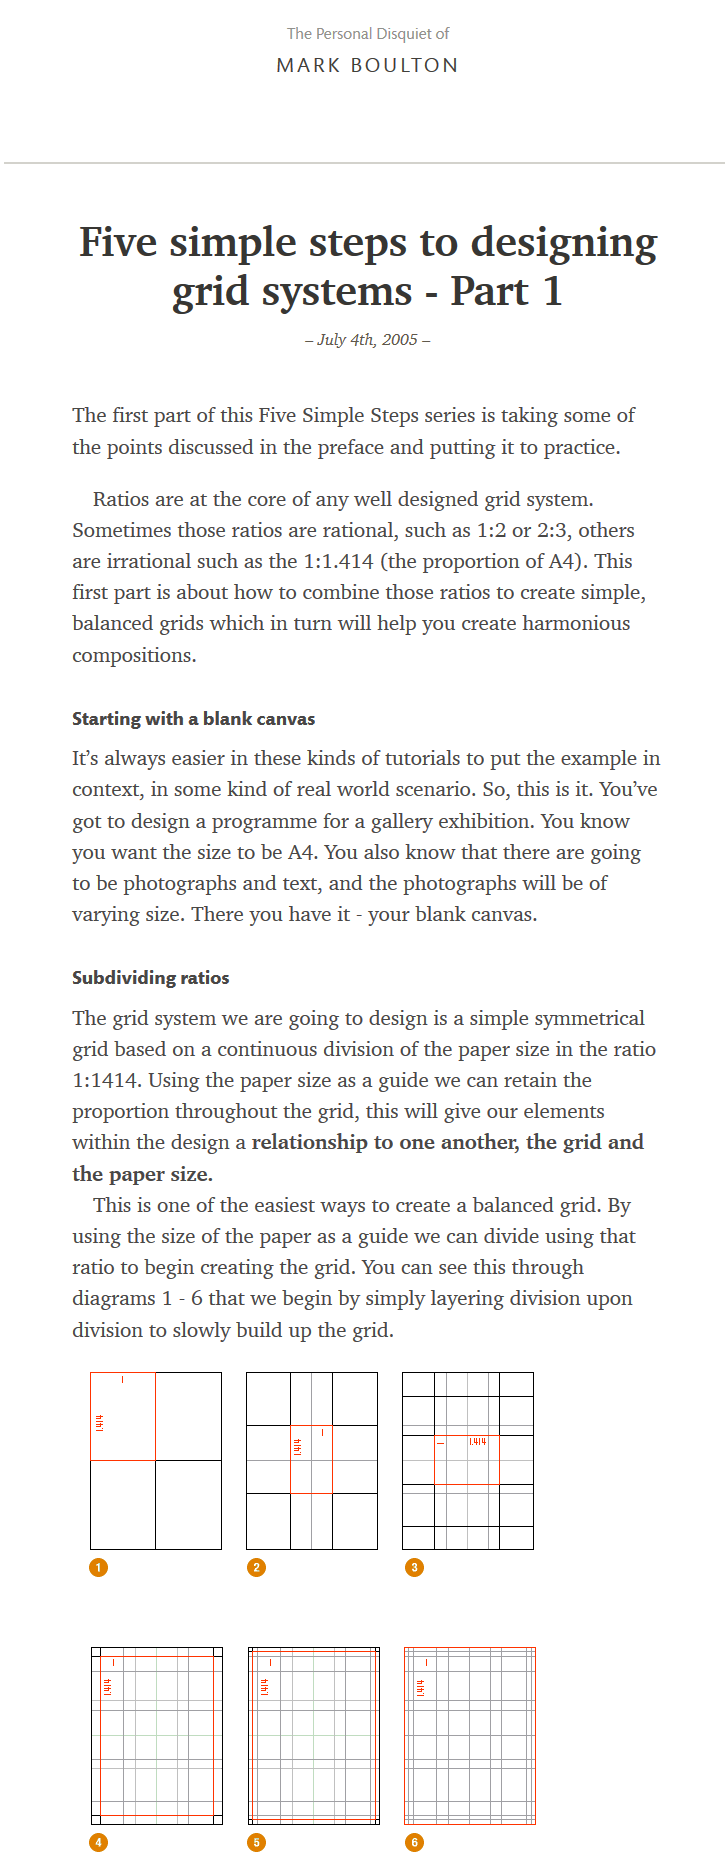 Five Simple Steps To Designing Grid Systems Part 1 The Personal Disquiet Of Mark Boulton Grid System Wellness Design Grid